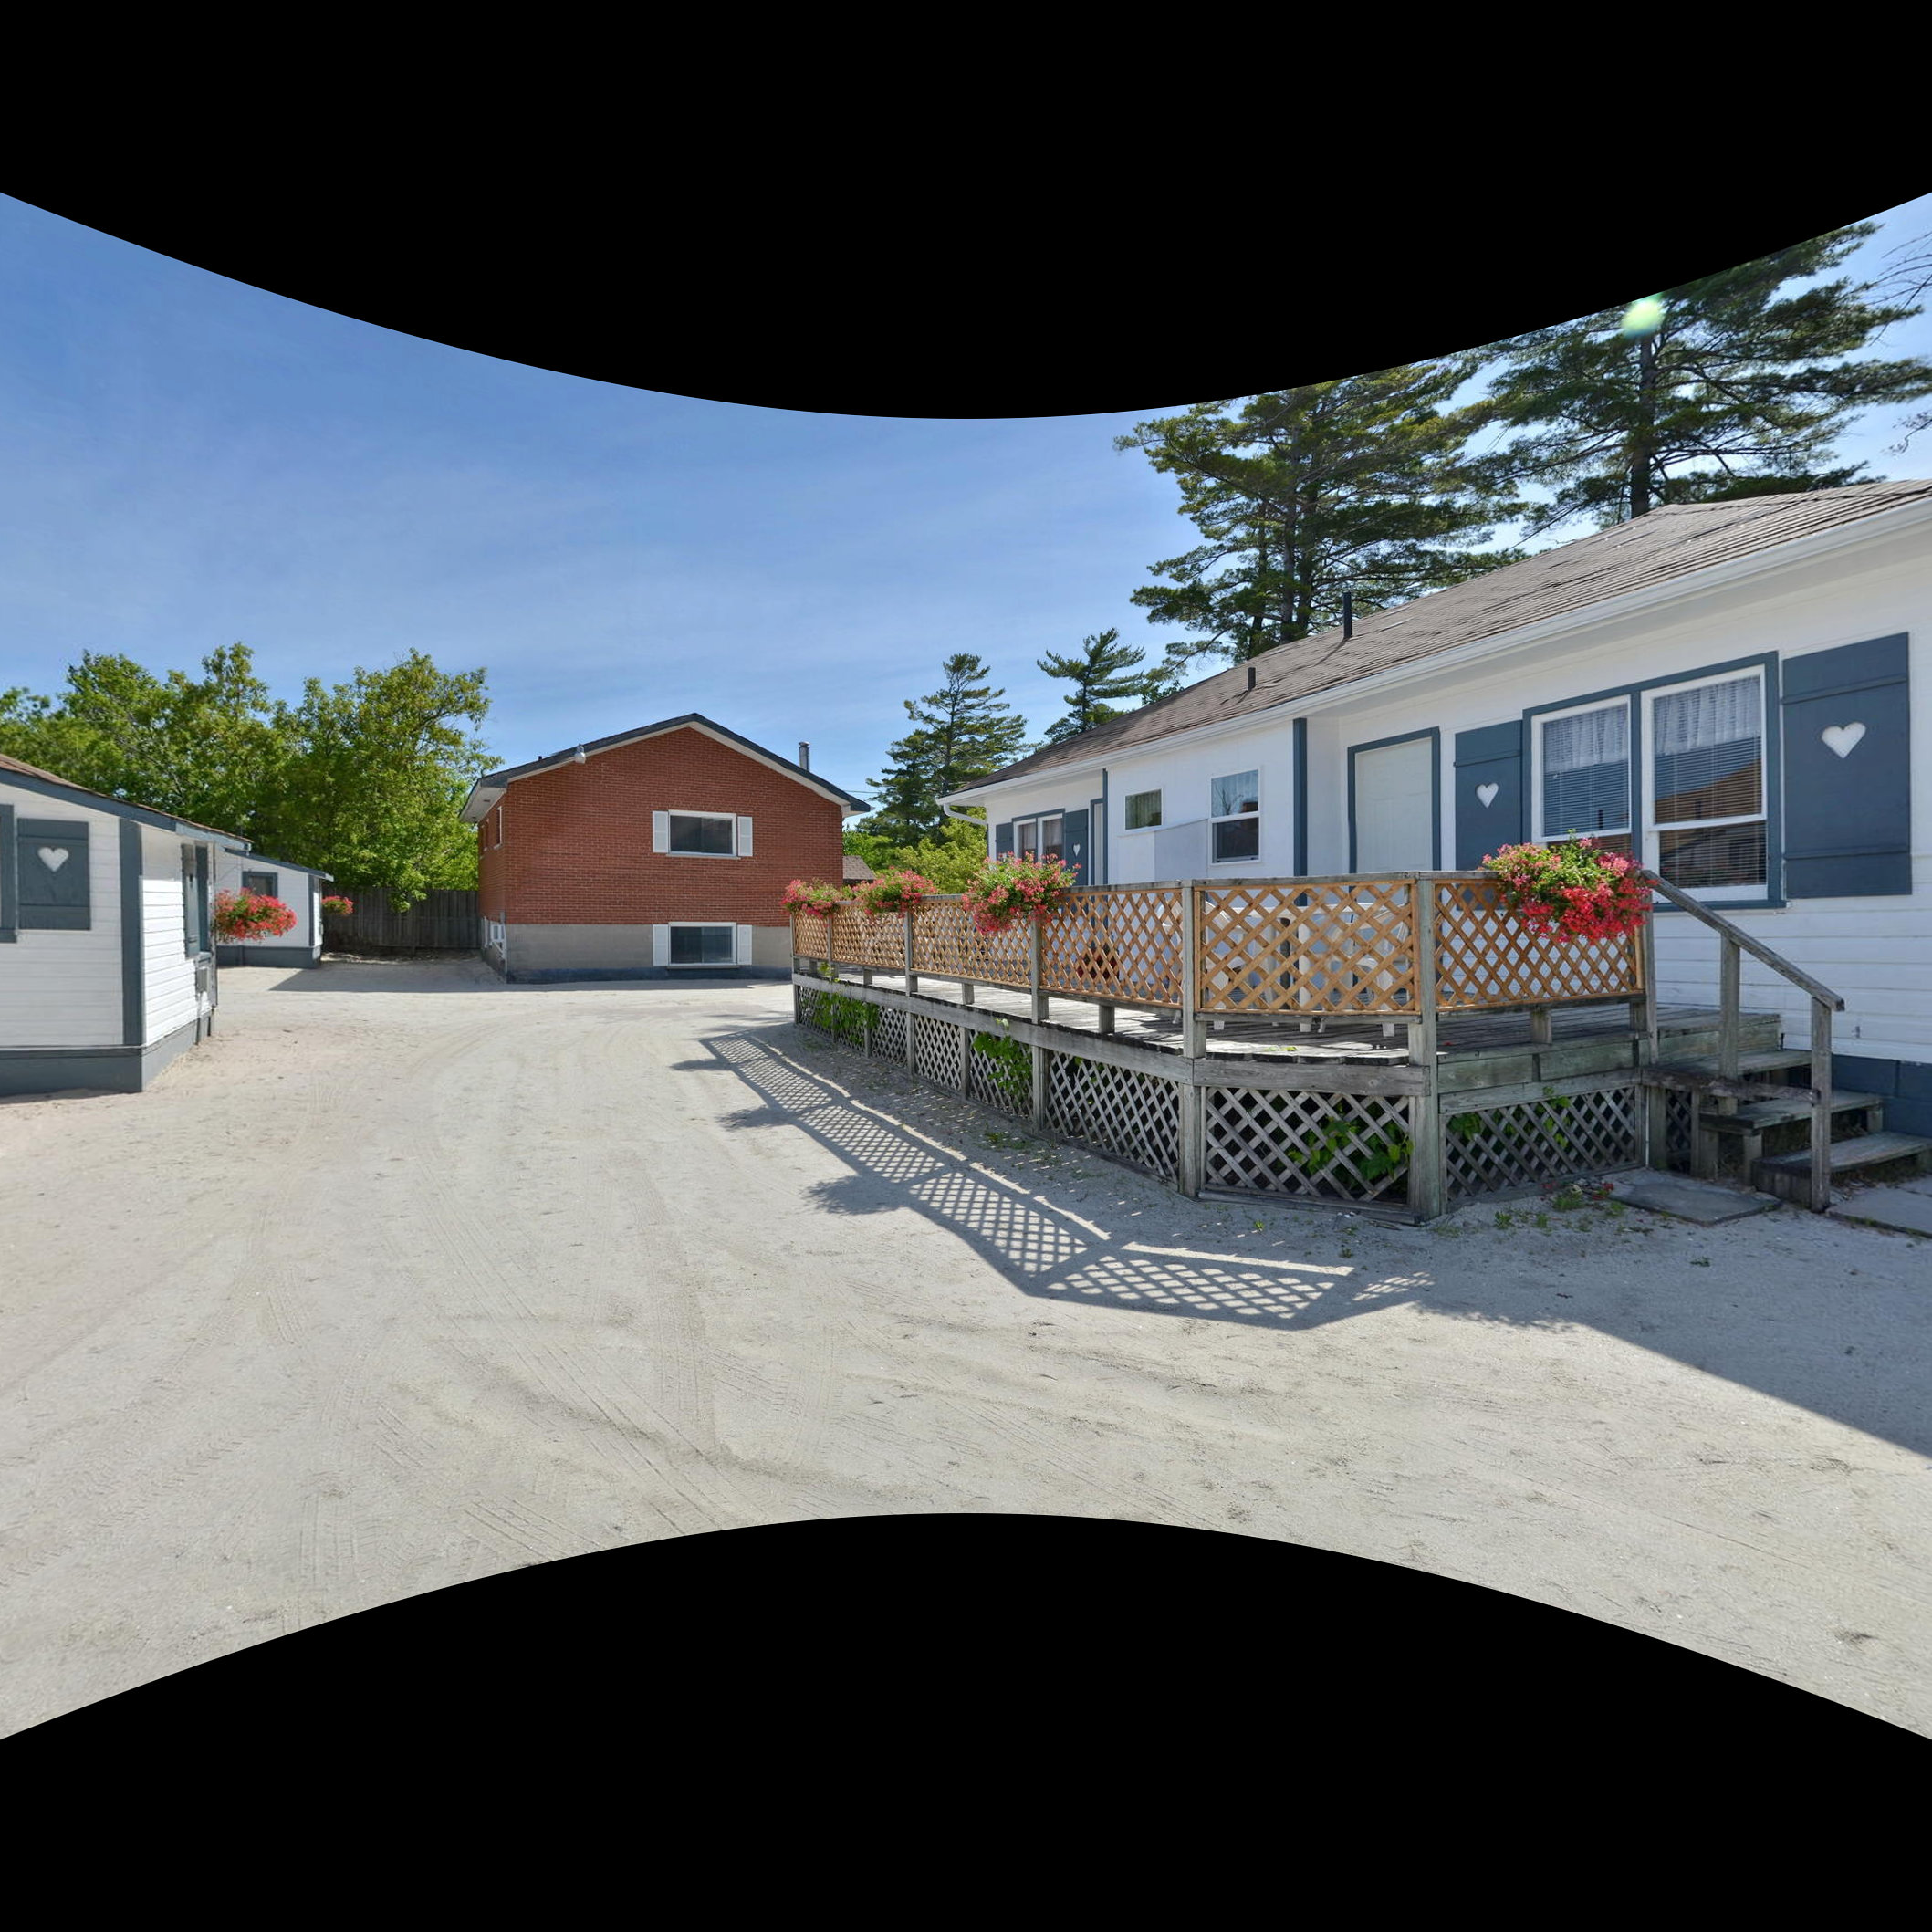 wasaga luxury cottage bedrooms guests baths beach properties canada ontario rentals cottages house woodland woodlandbeach whole